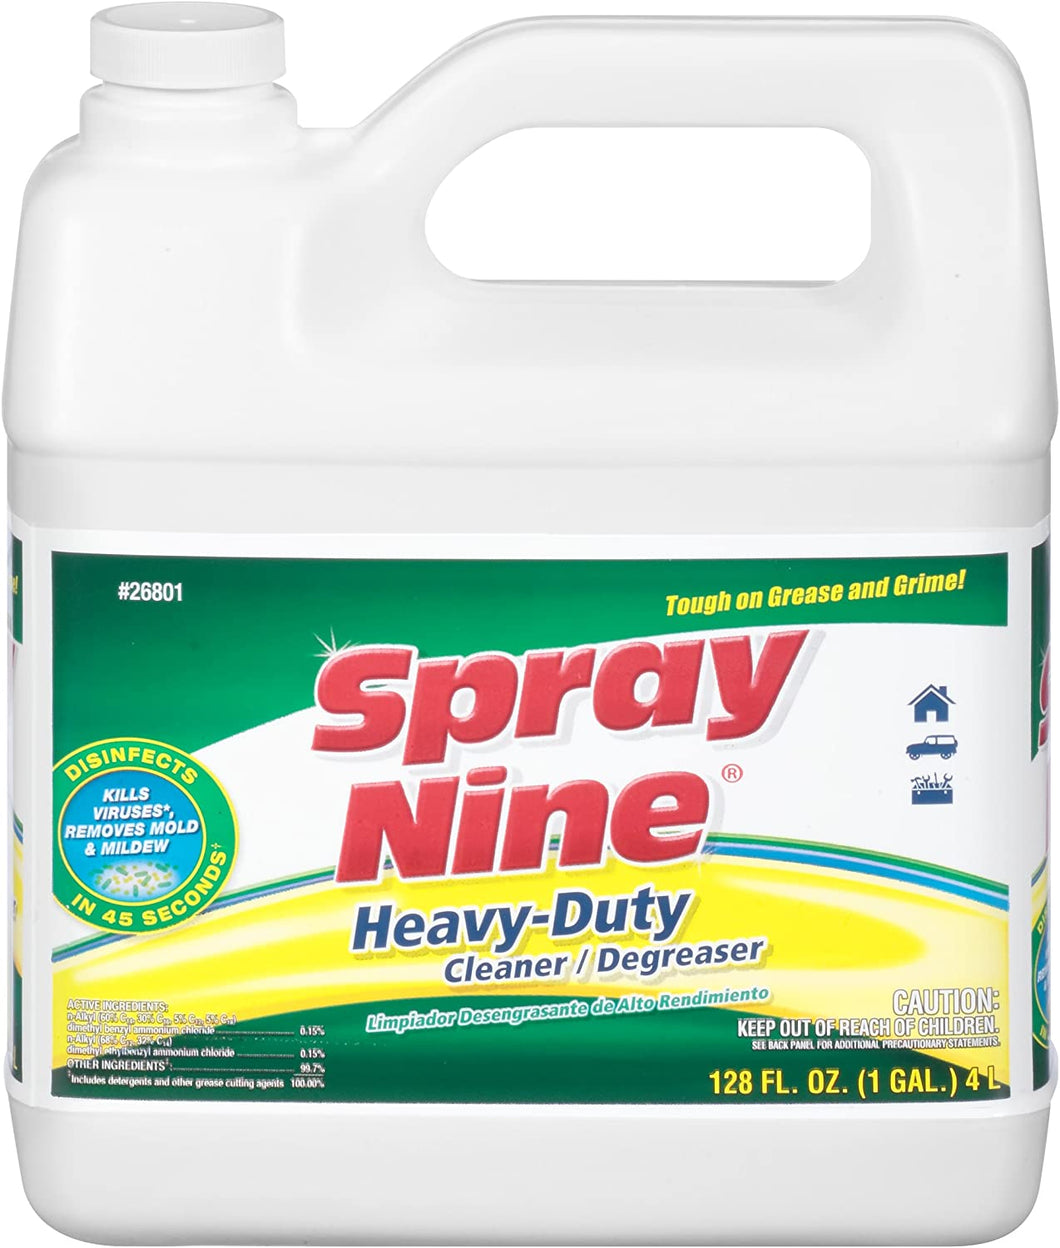 26801 SPRAY NINE HEAVY-DUTY CLEANER / DEGREASER (4/1 GALLON)